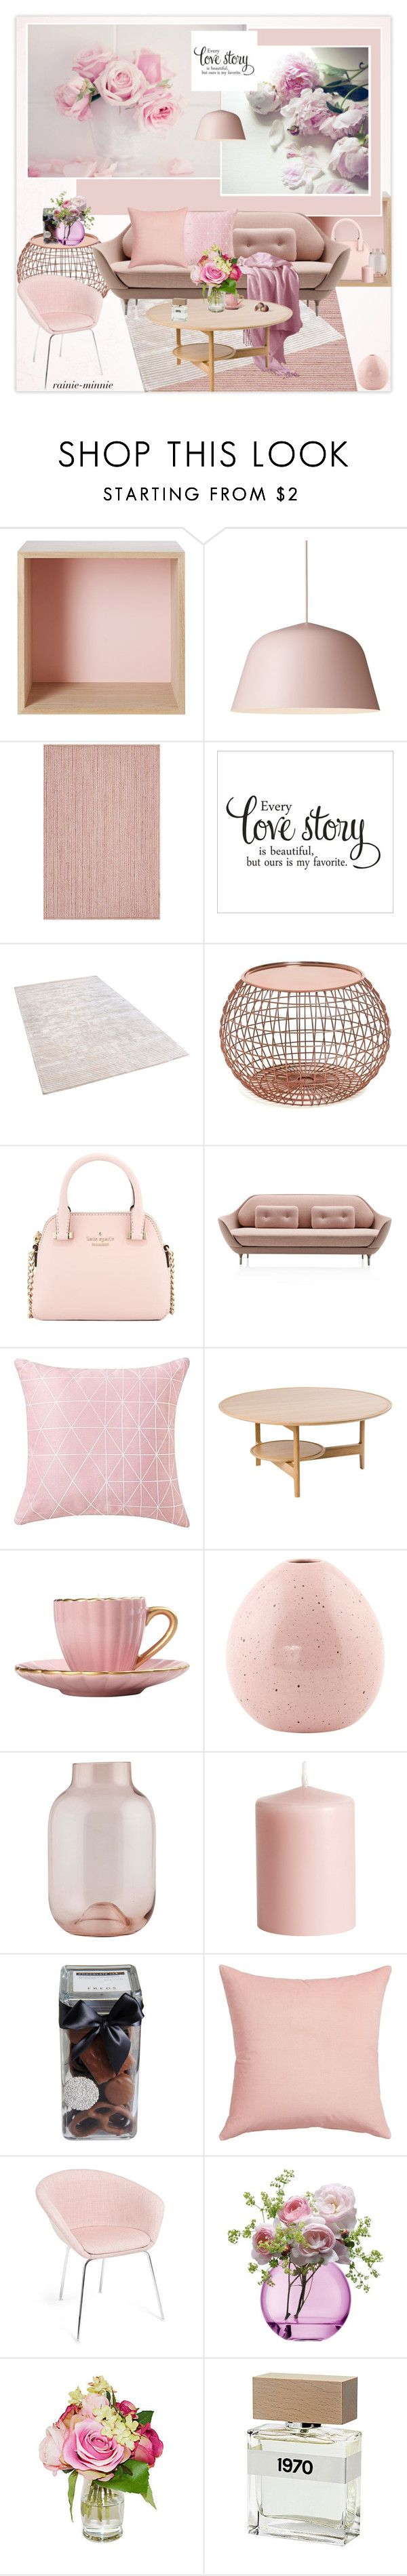 """Pink Roses for Valentine's day"" by rainie-minnie ❤ liked on Polyvore featuring interior, interiors, interior design, home, home decor, interior decorating, Muuto, Chandra Rugs, Kate Spade and Ercol"